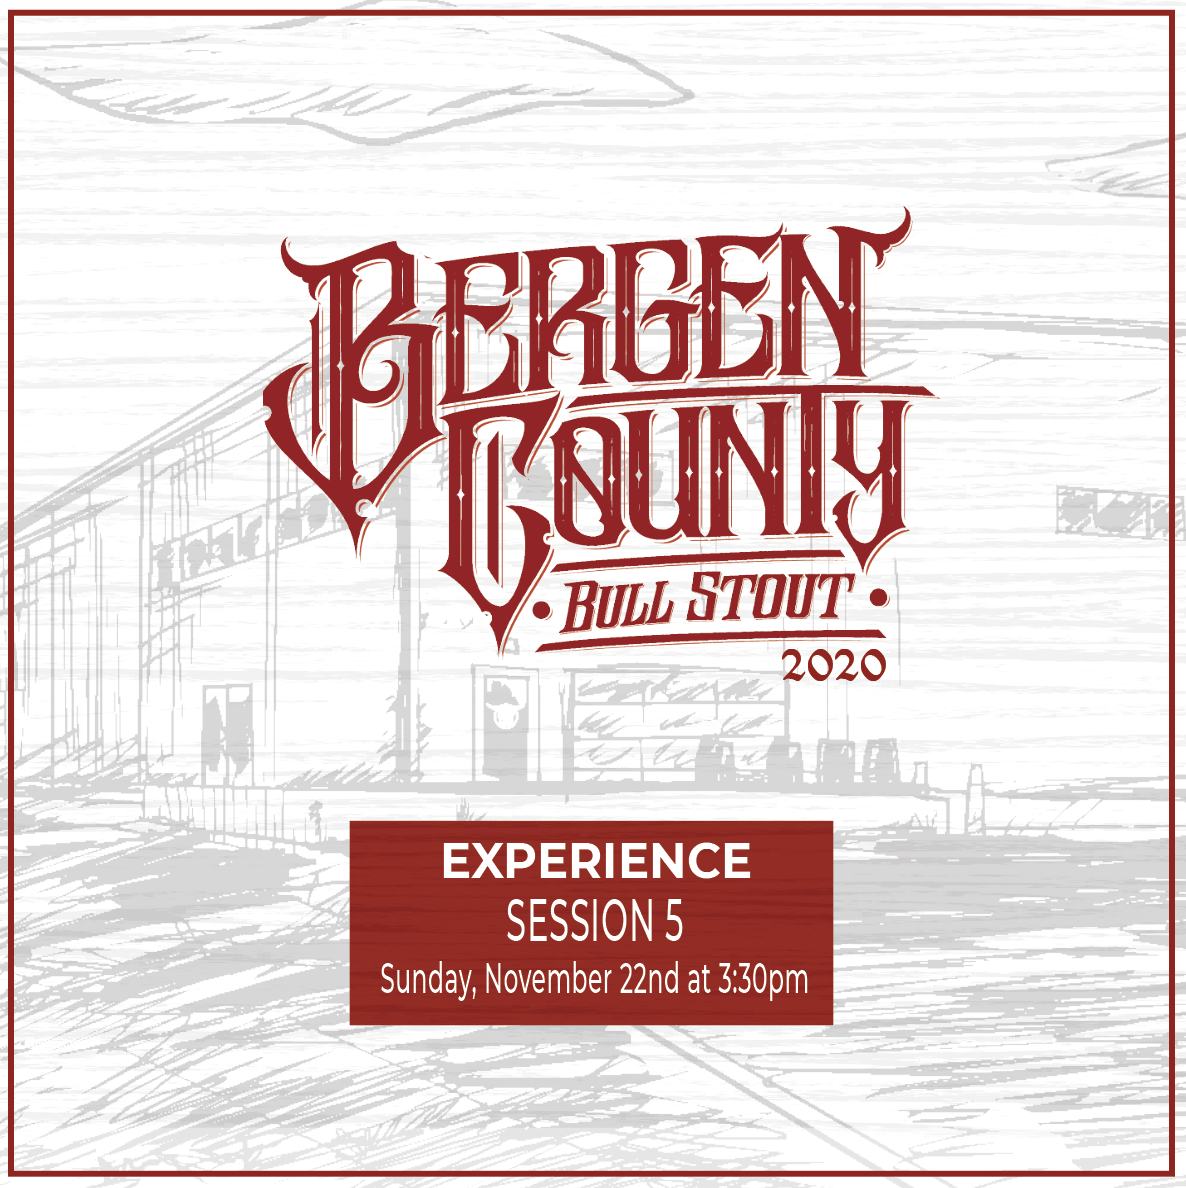 BCBS Package Sun 3:30pm Session